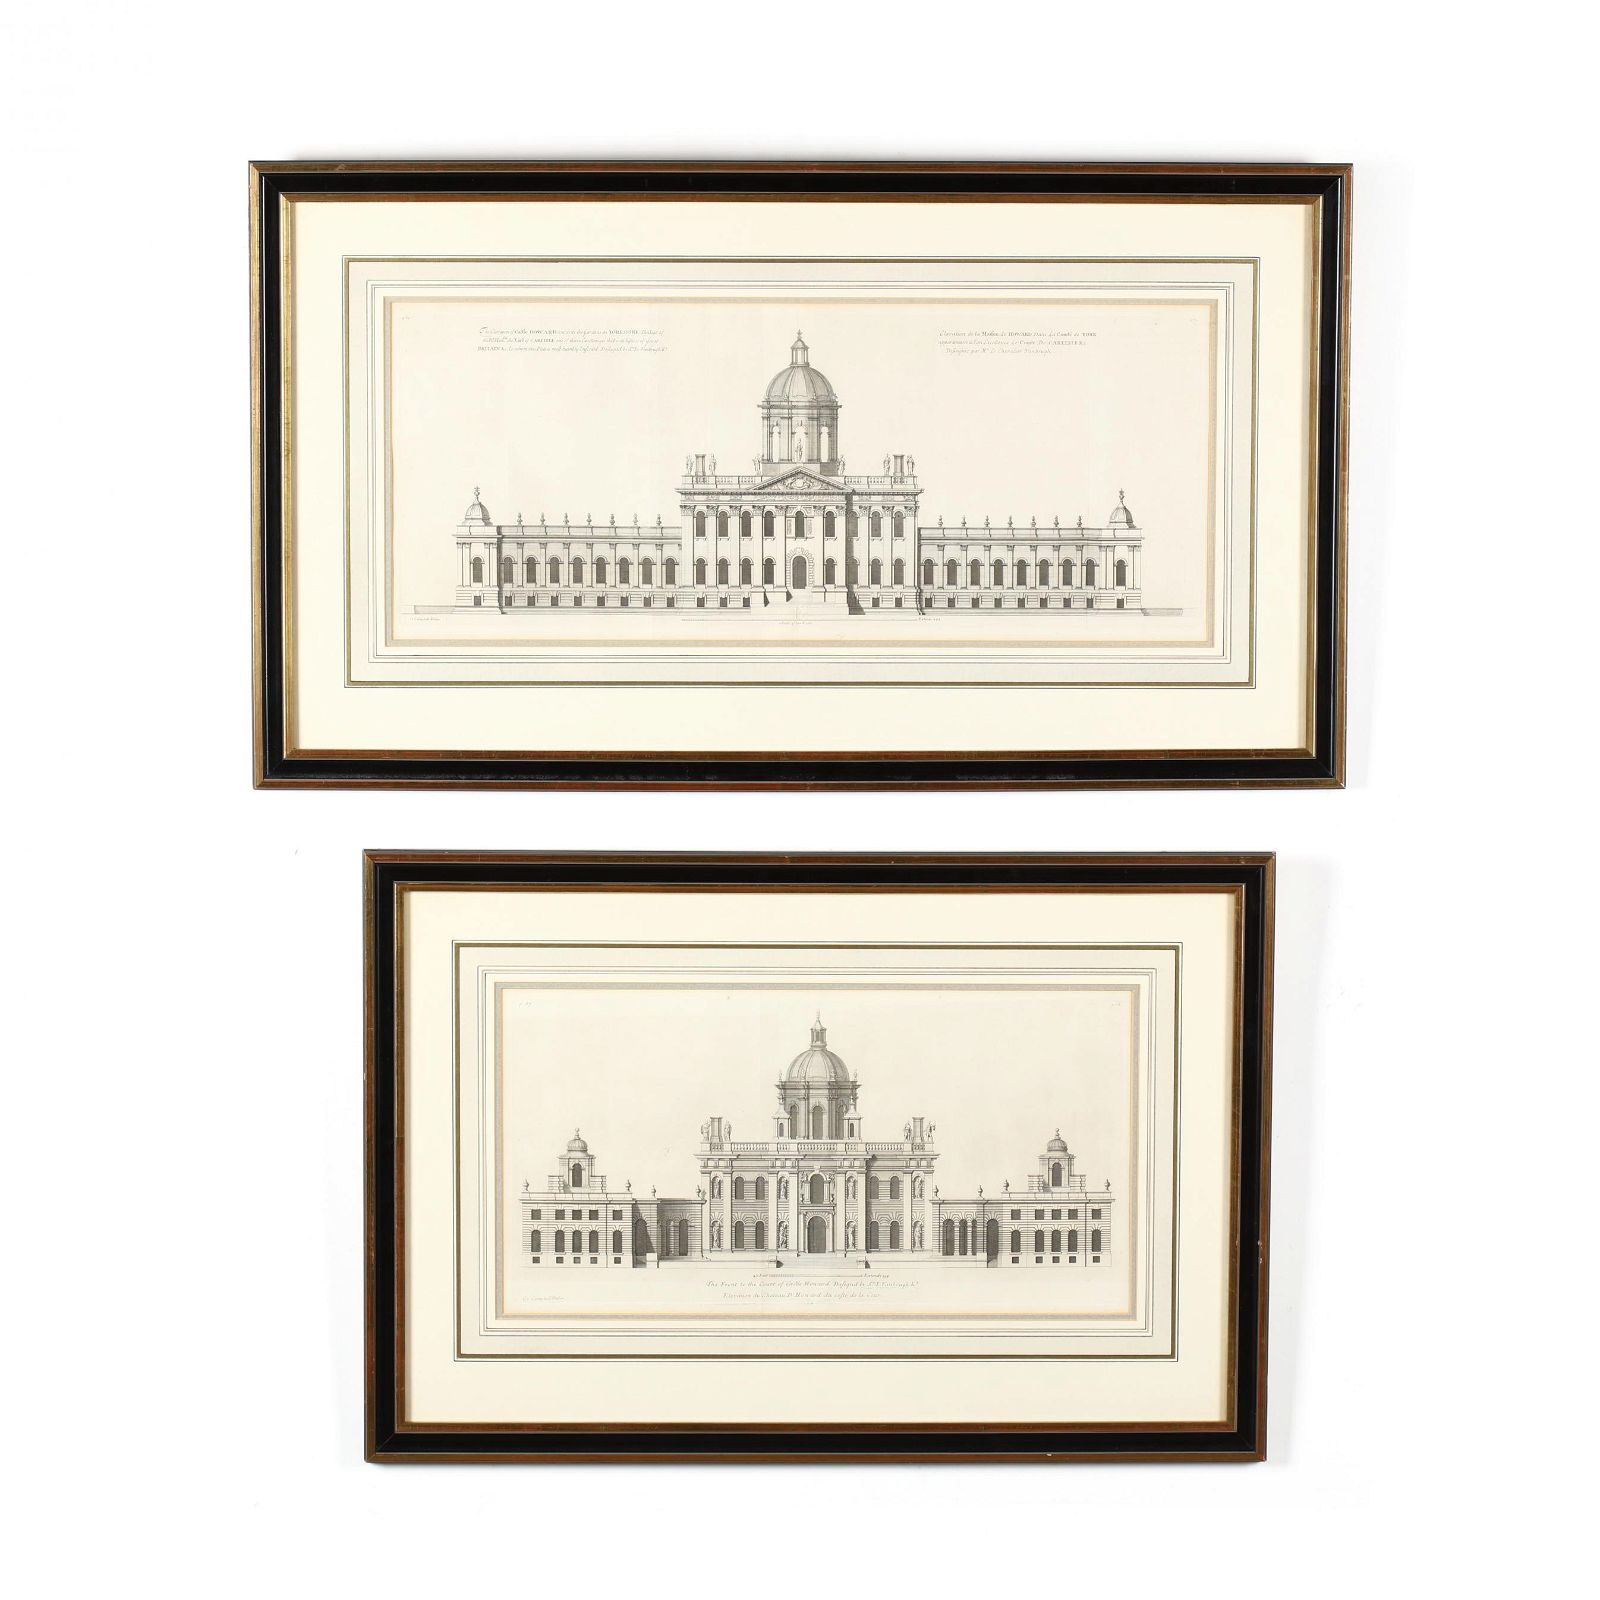 Two Antique Architectural Engravings from Colen